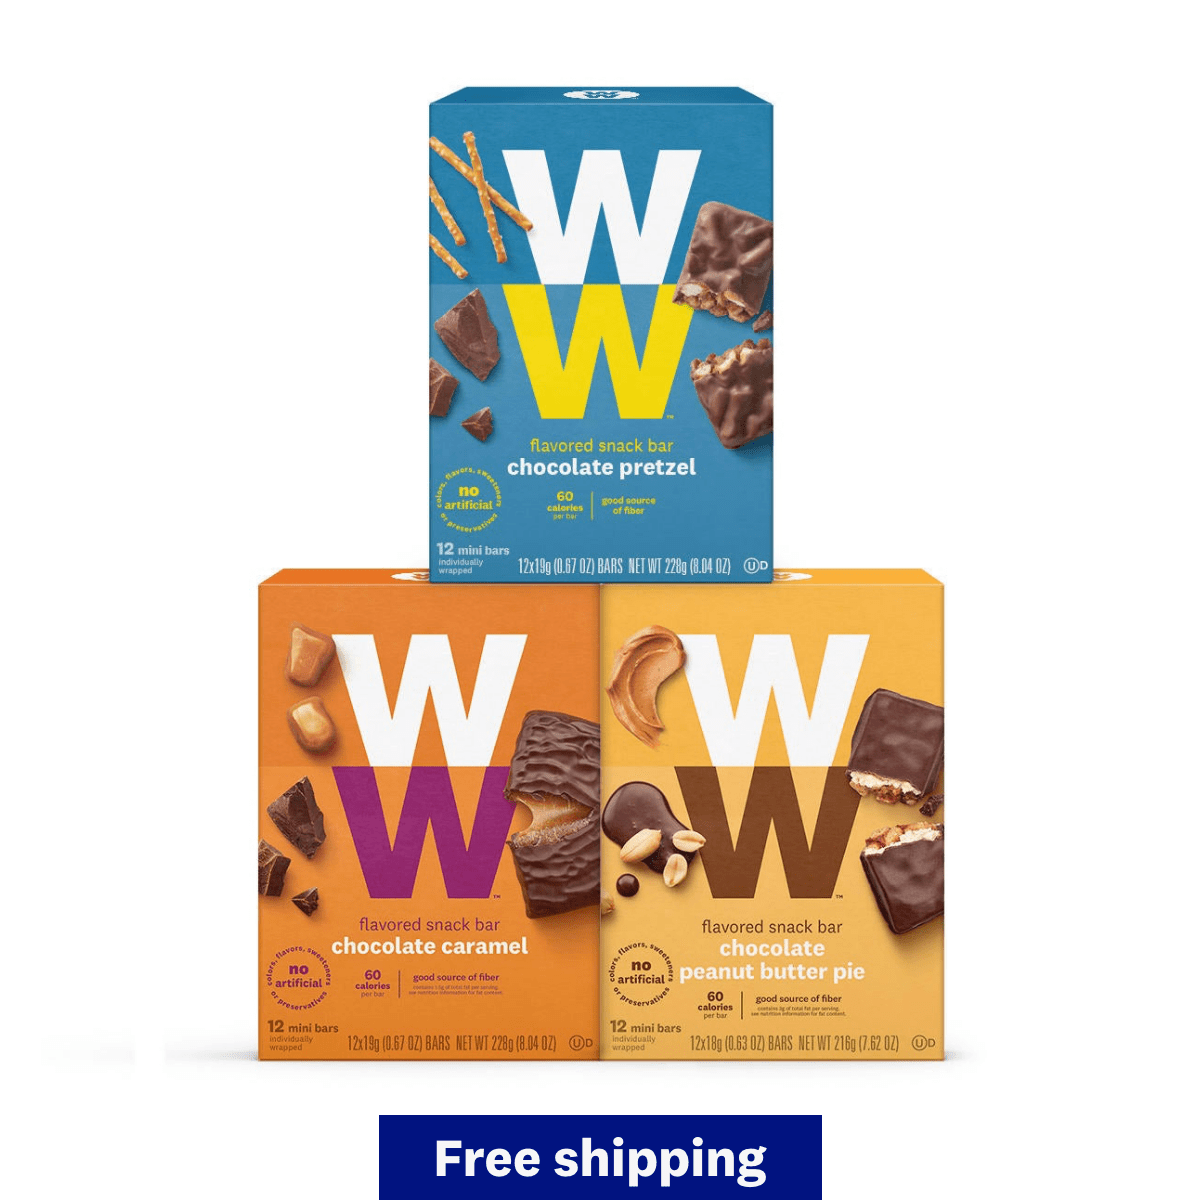 Chocolate Snack Bar Surpreme Six Pack - chocolate pretzel, chocolate caramel, chocolate peanut butter pie boxes, qualifies for free shipping